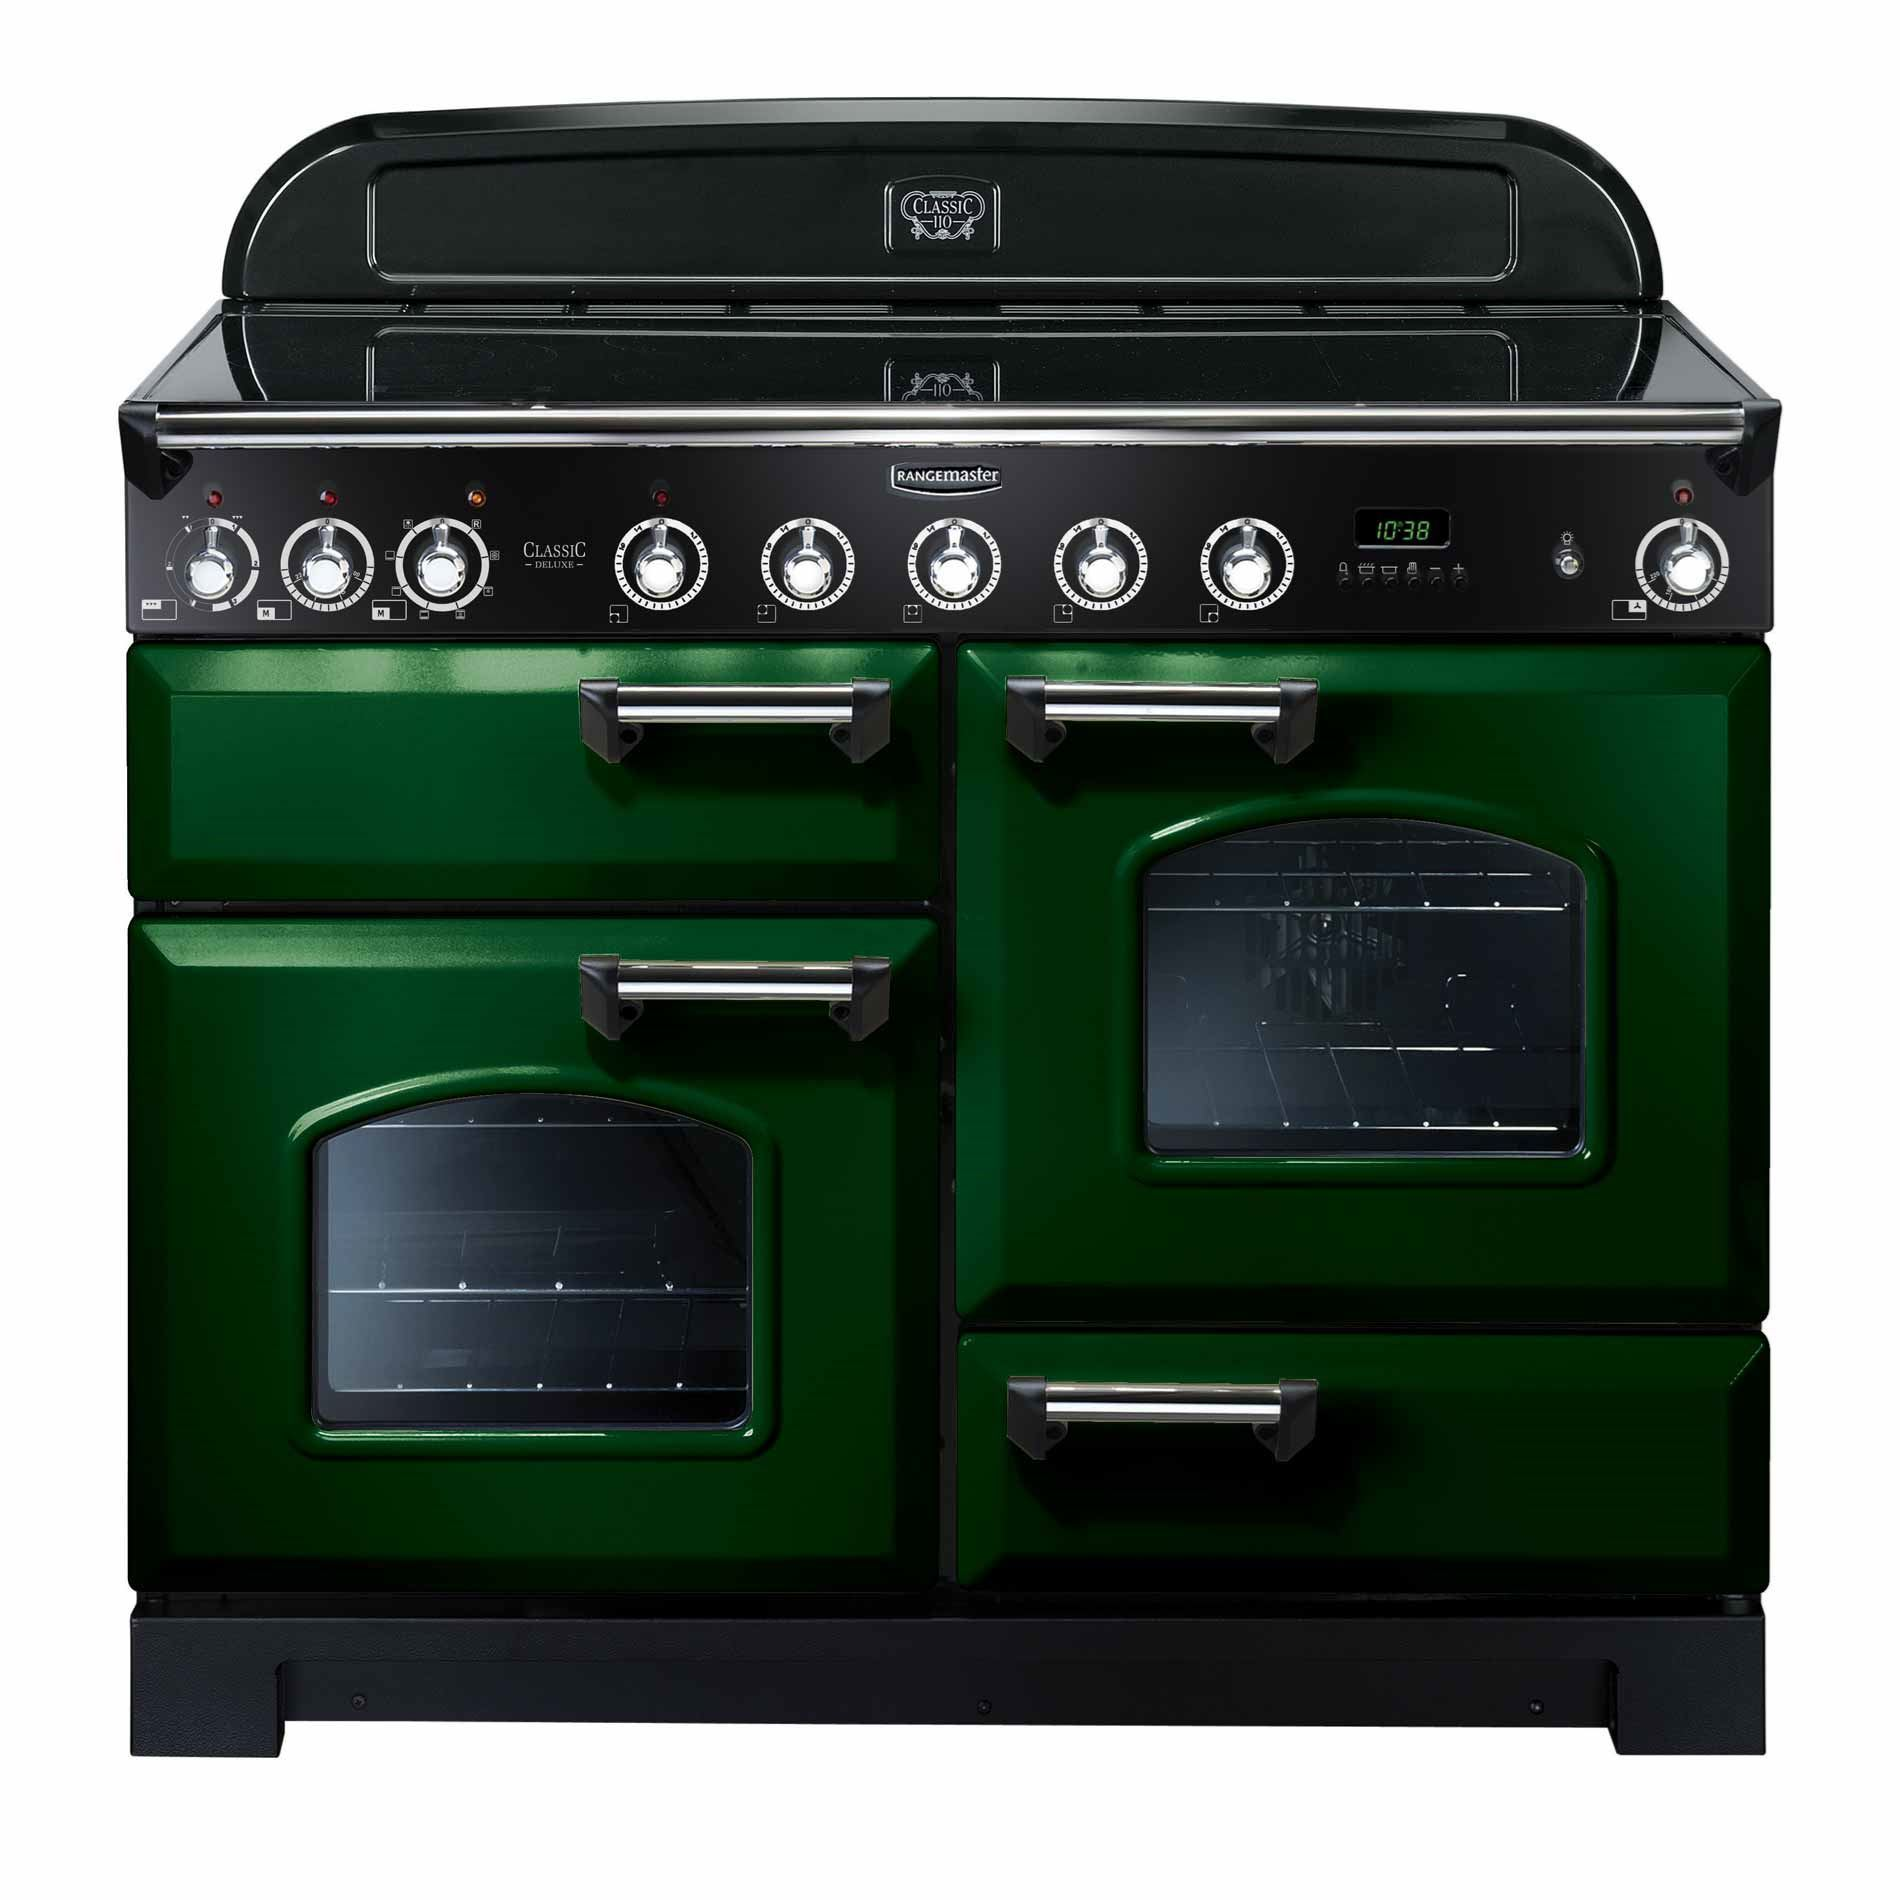 Classic Cuisine Induction Cooker Instructions Rangemaster Classic Deluxe 110 Induction Racing Green